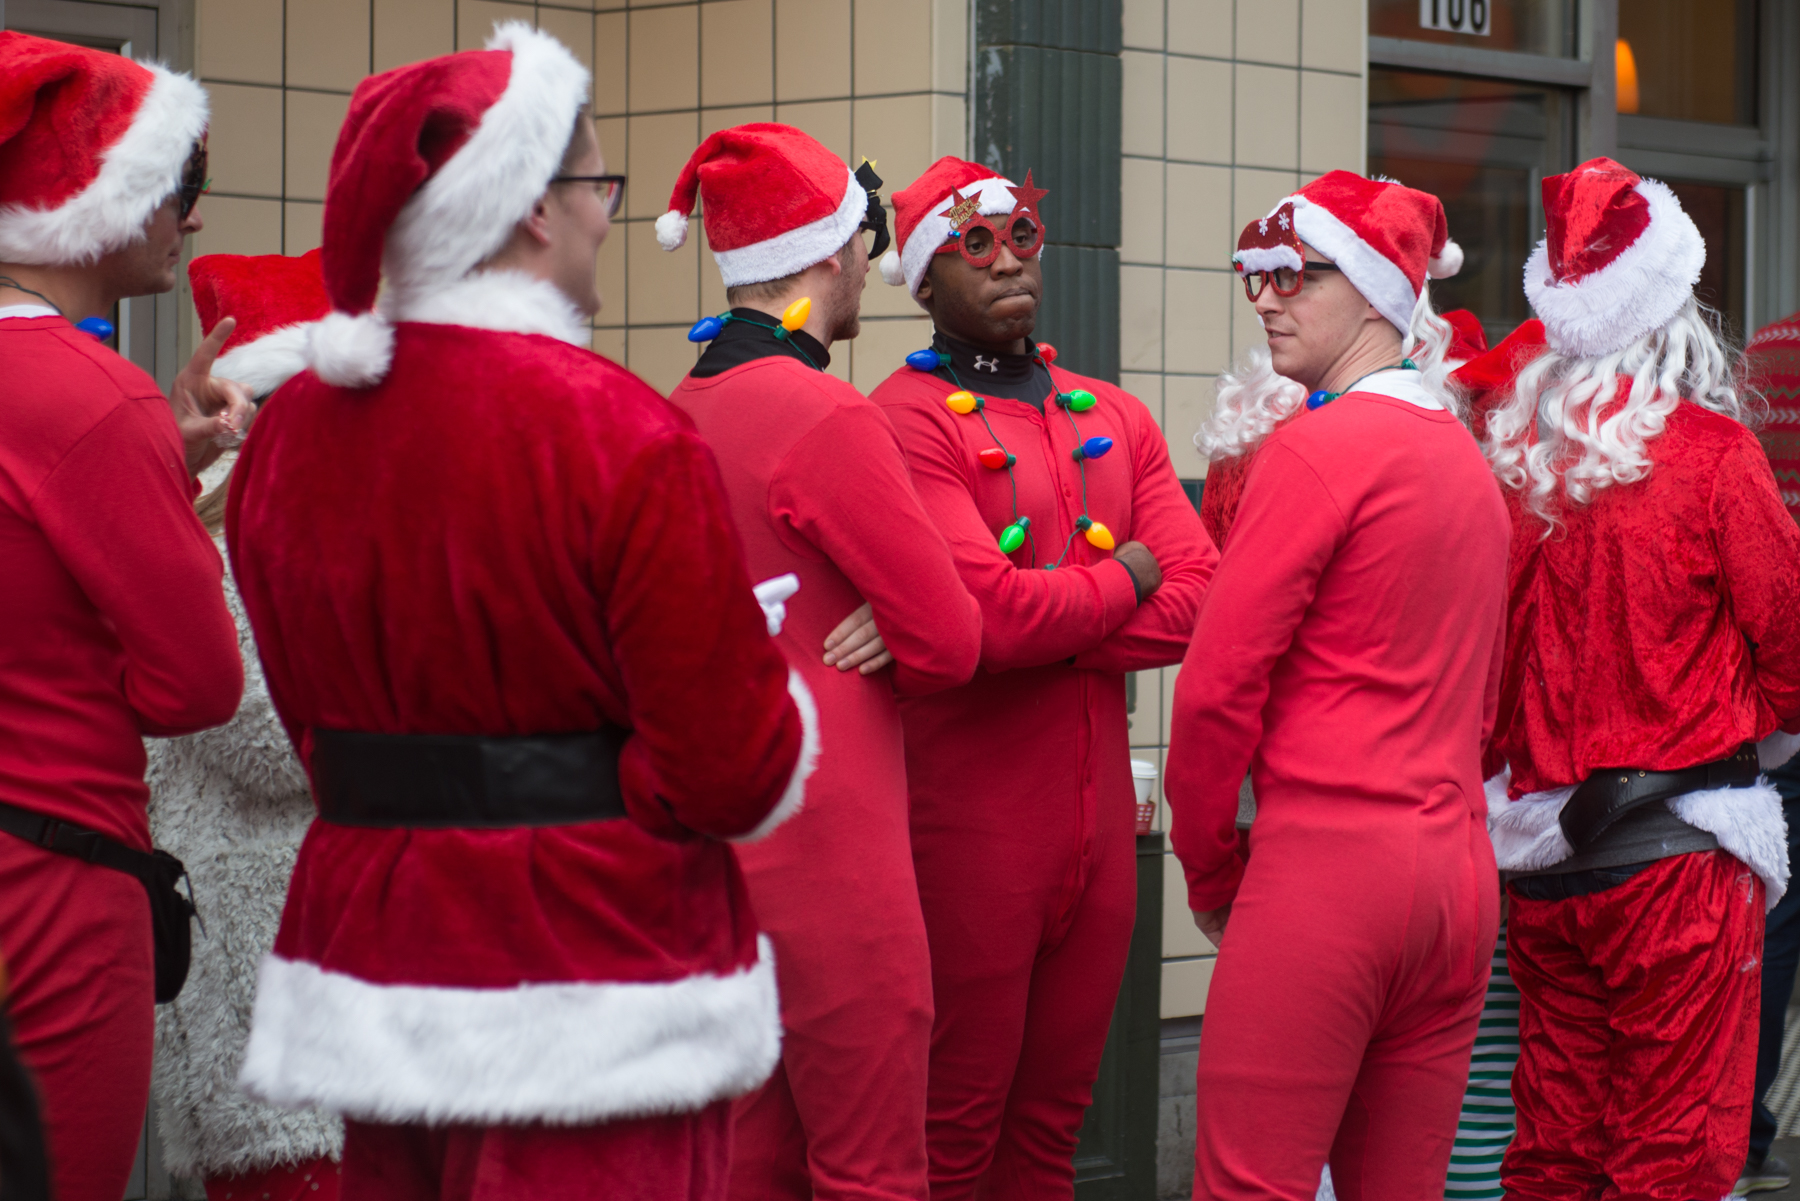 "Thousands of Santas flooded the streets of Seattle for the annual Seattle Santa Con. Hundreds of people packed bars downtown in Santa, Elf and Reindeer attire. The focus is on spontaneity and creativity, while having a good time and spreading cheer and goodwill. and their #1 rule? ""My name is Santa. Your name is Santa. We are Santa. Who's in charge here? Santa!"" (Image: Chona Kasinger / Seattle Refined)"